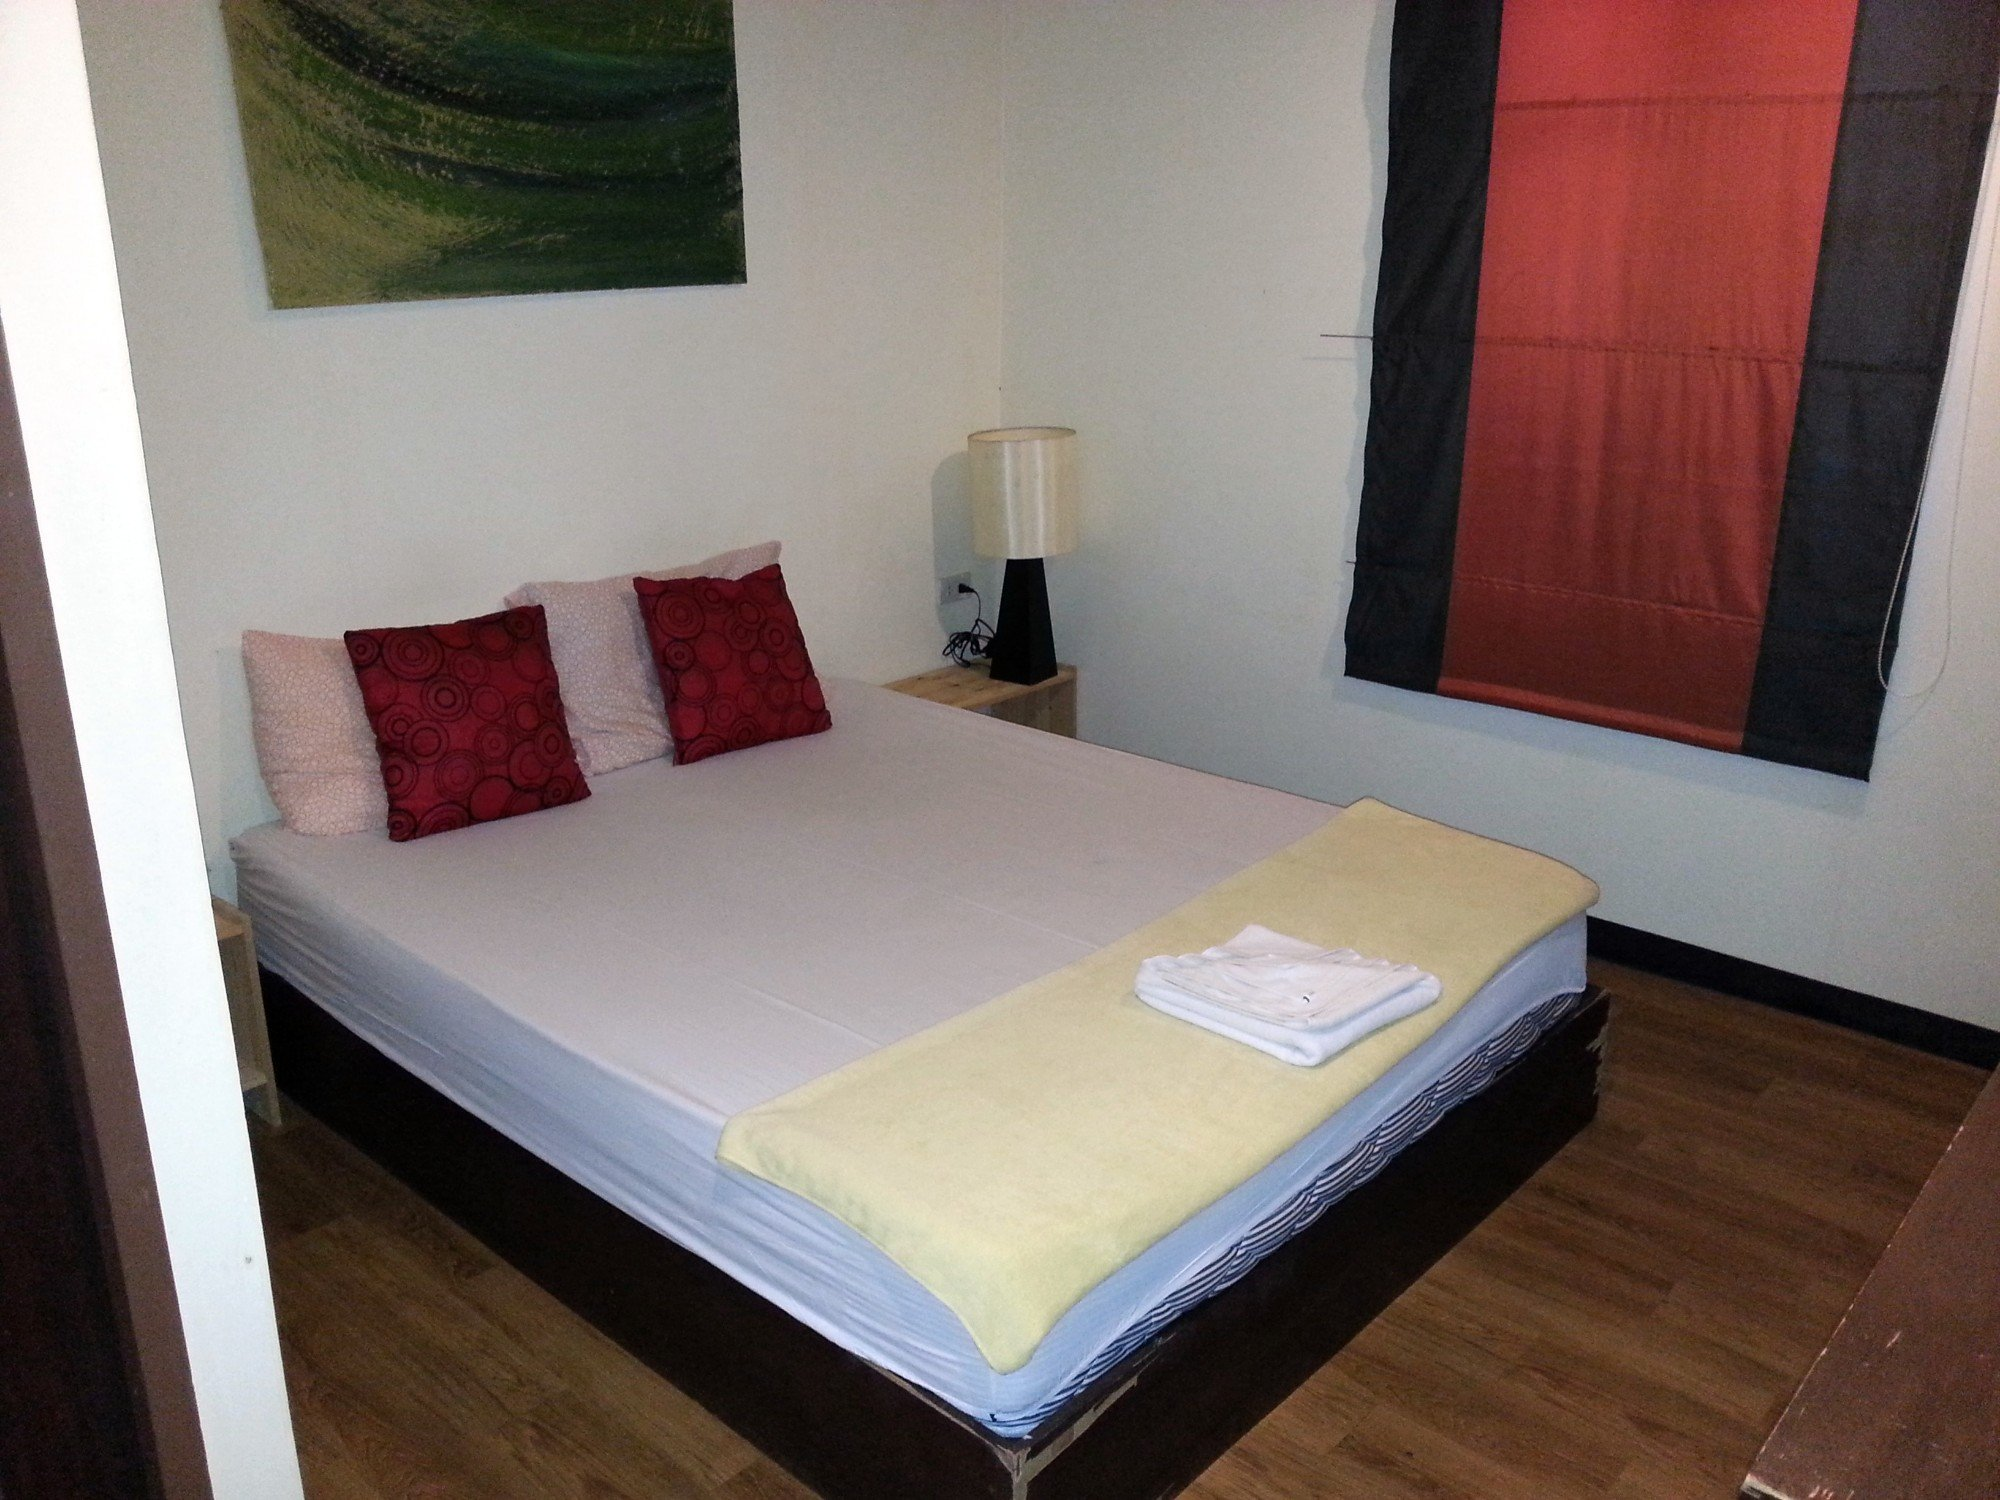 Standard double room at the Sincere Guesthouse